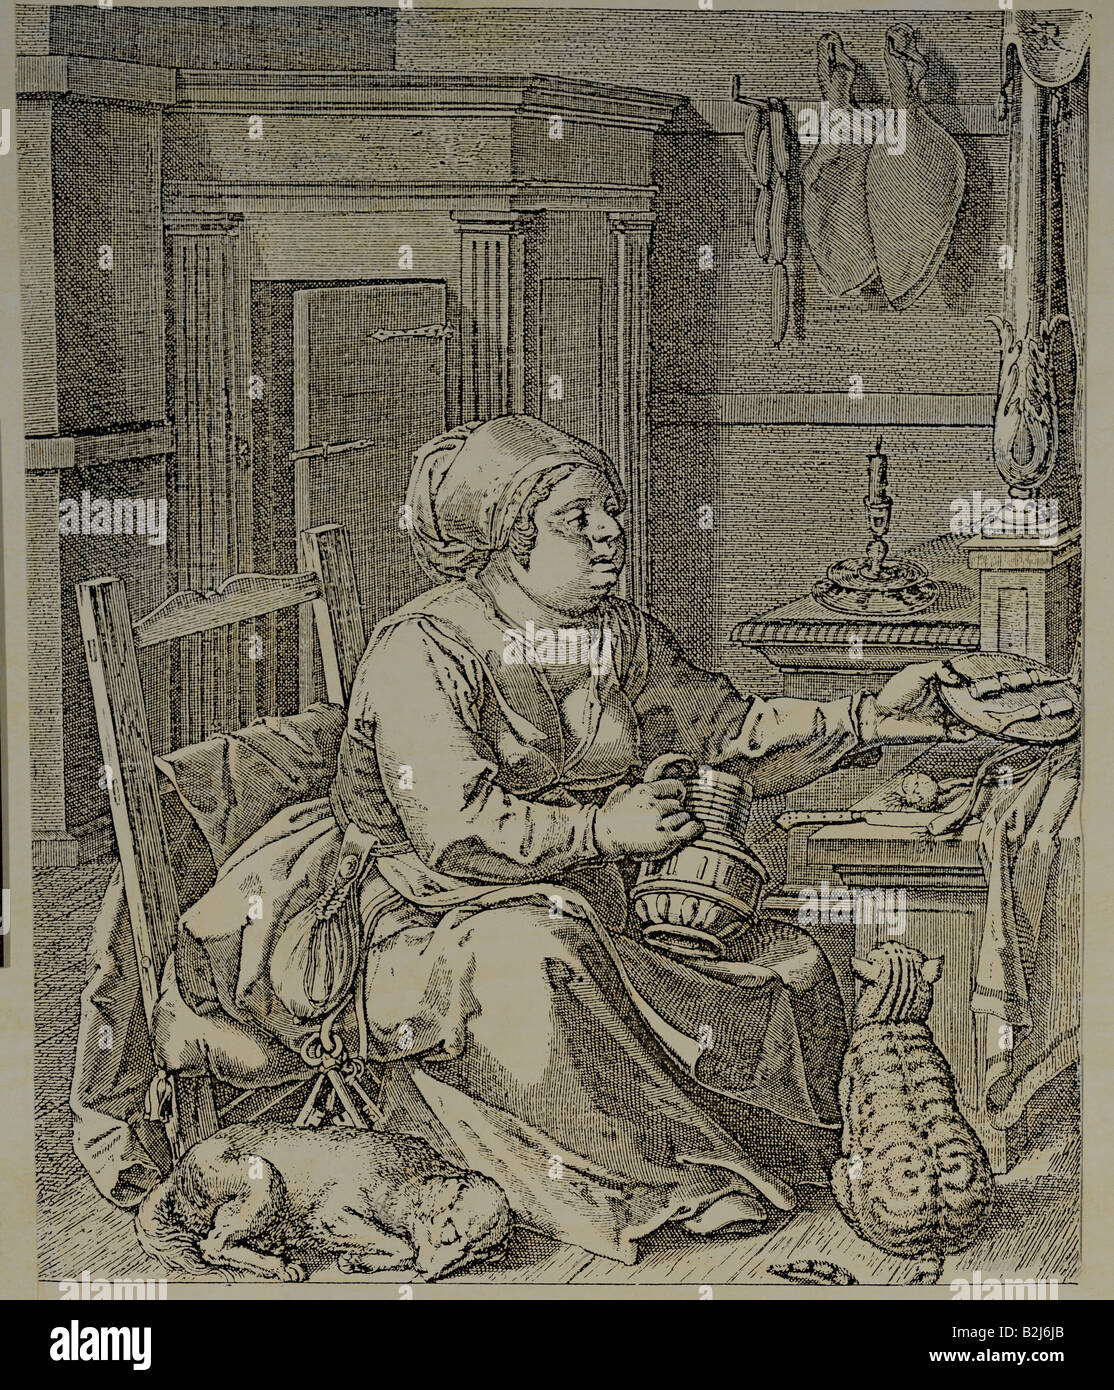 religion, Christianity, allegory, deadly sins, 'Gluttony', copper engraving by Jodrus a Winghe, um 1600, - Stock Image